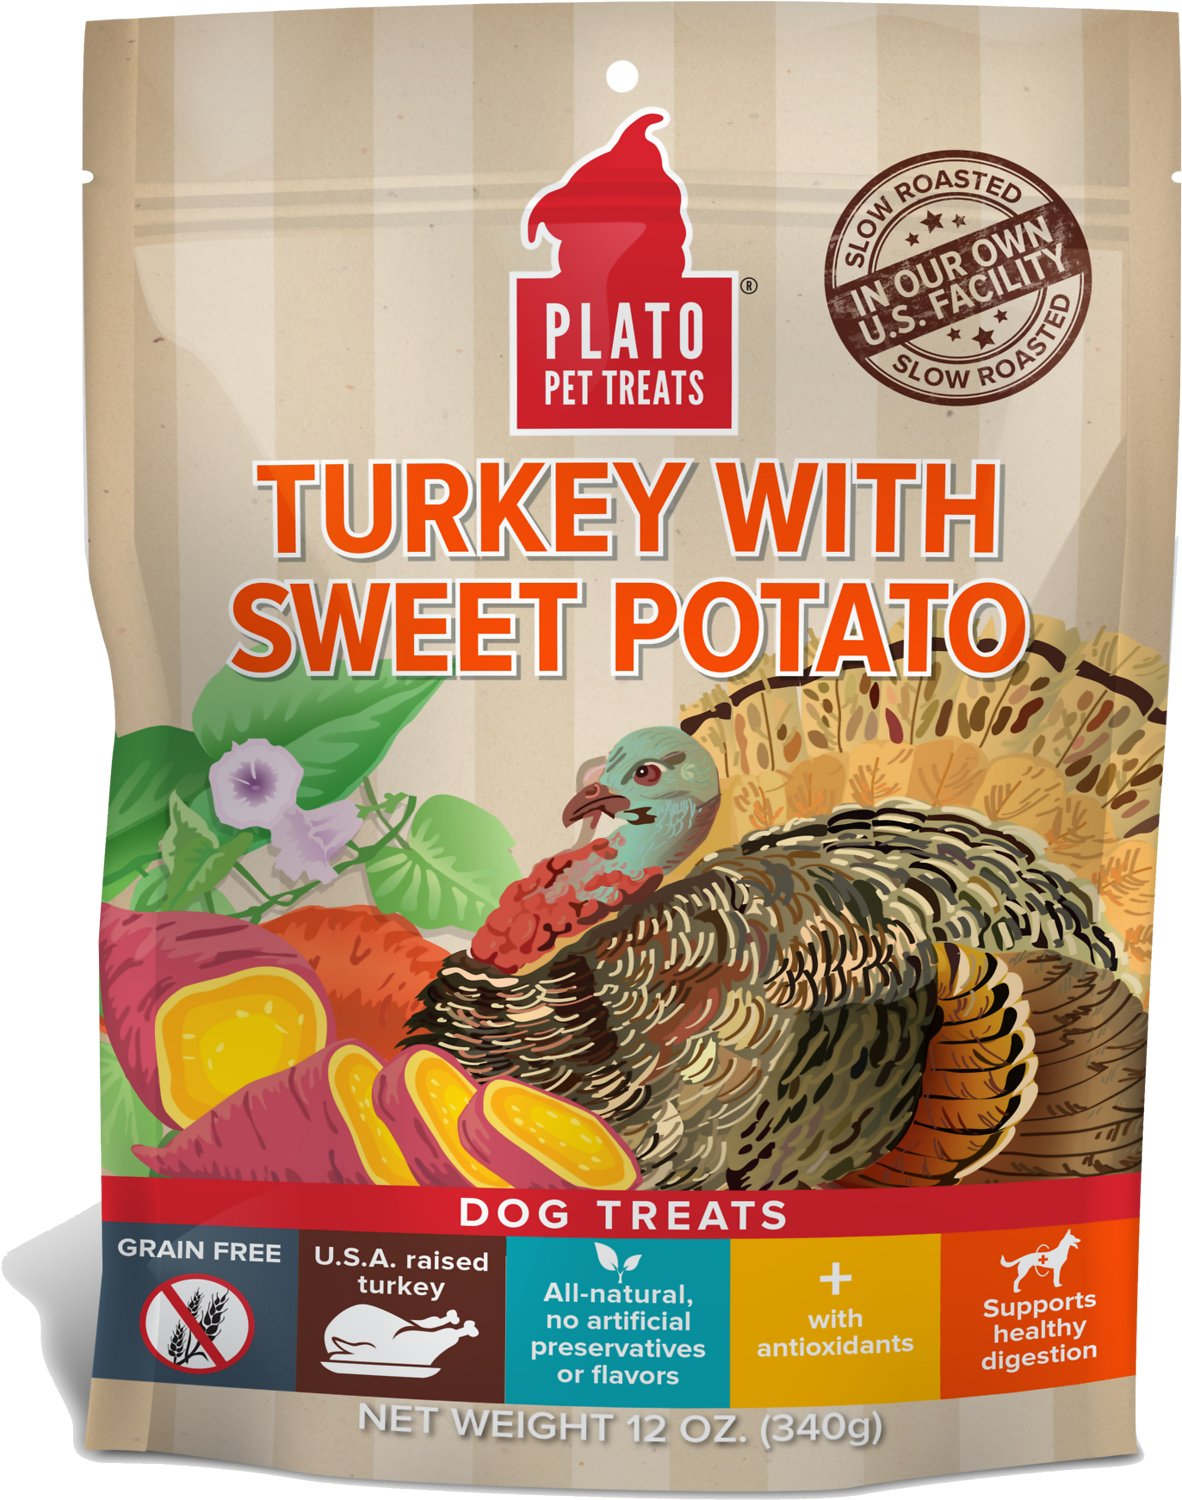 Plato Real Strips Turkey With Sweet Potato Dog Treats Image